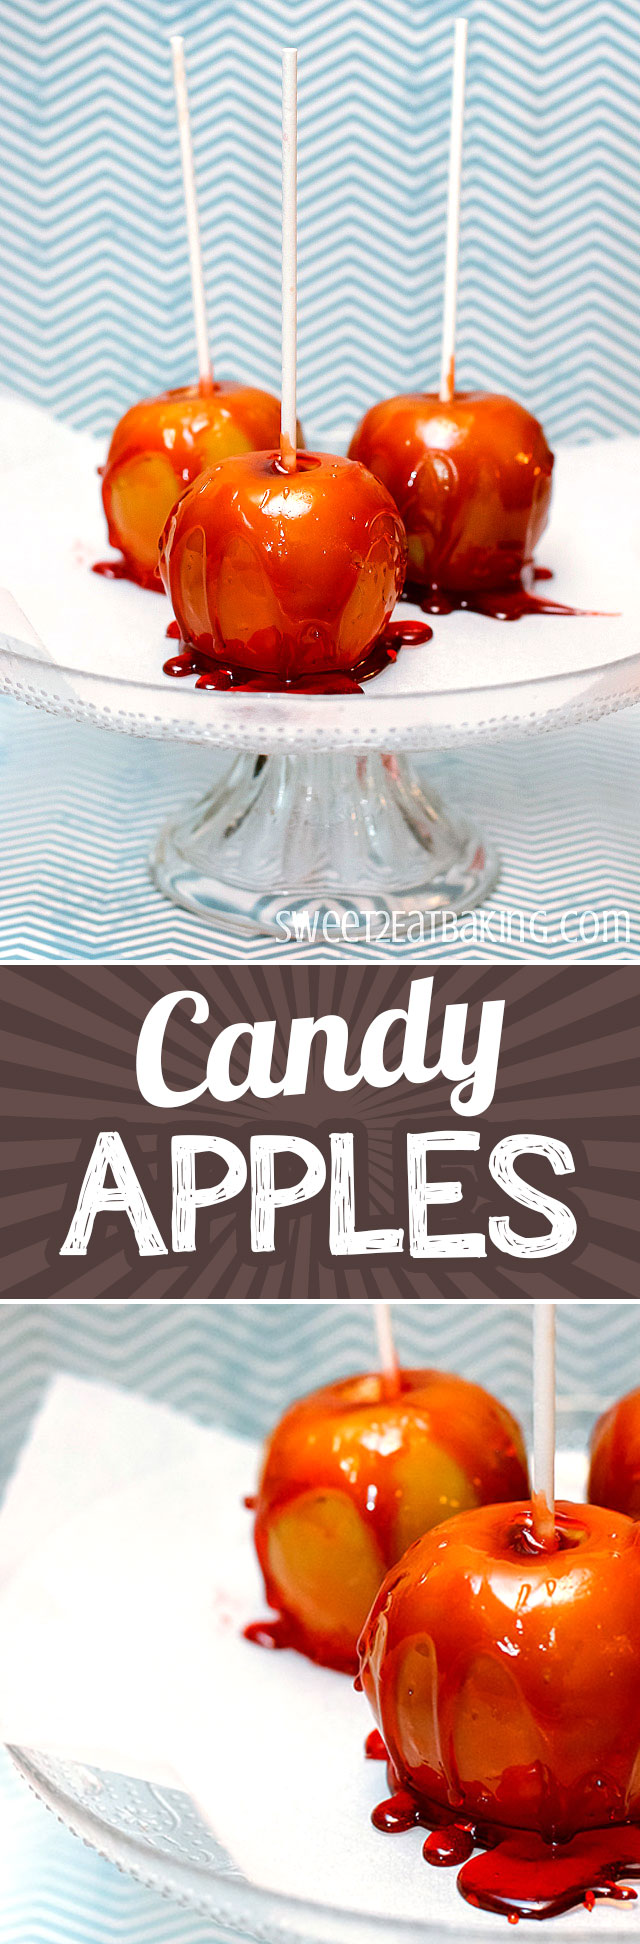 Toffee Apples (aka. Candy Apples) Recipe by Sweet2EatBaking.com | The perfect sweet treat for sitting around the bonfire watching the fireworks on bonfire night. Sweet apples coated in a hard candy. Make your own toffee candy apples